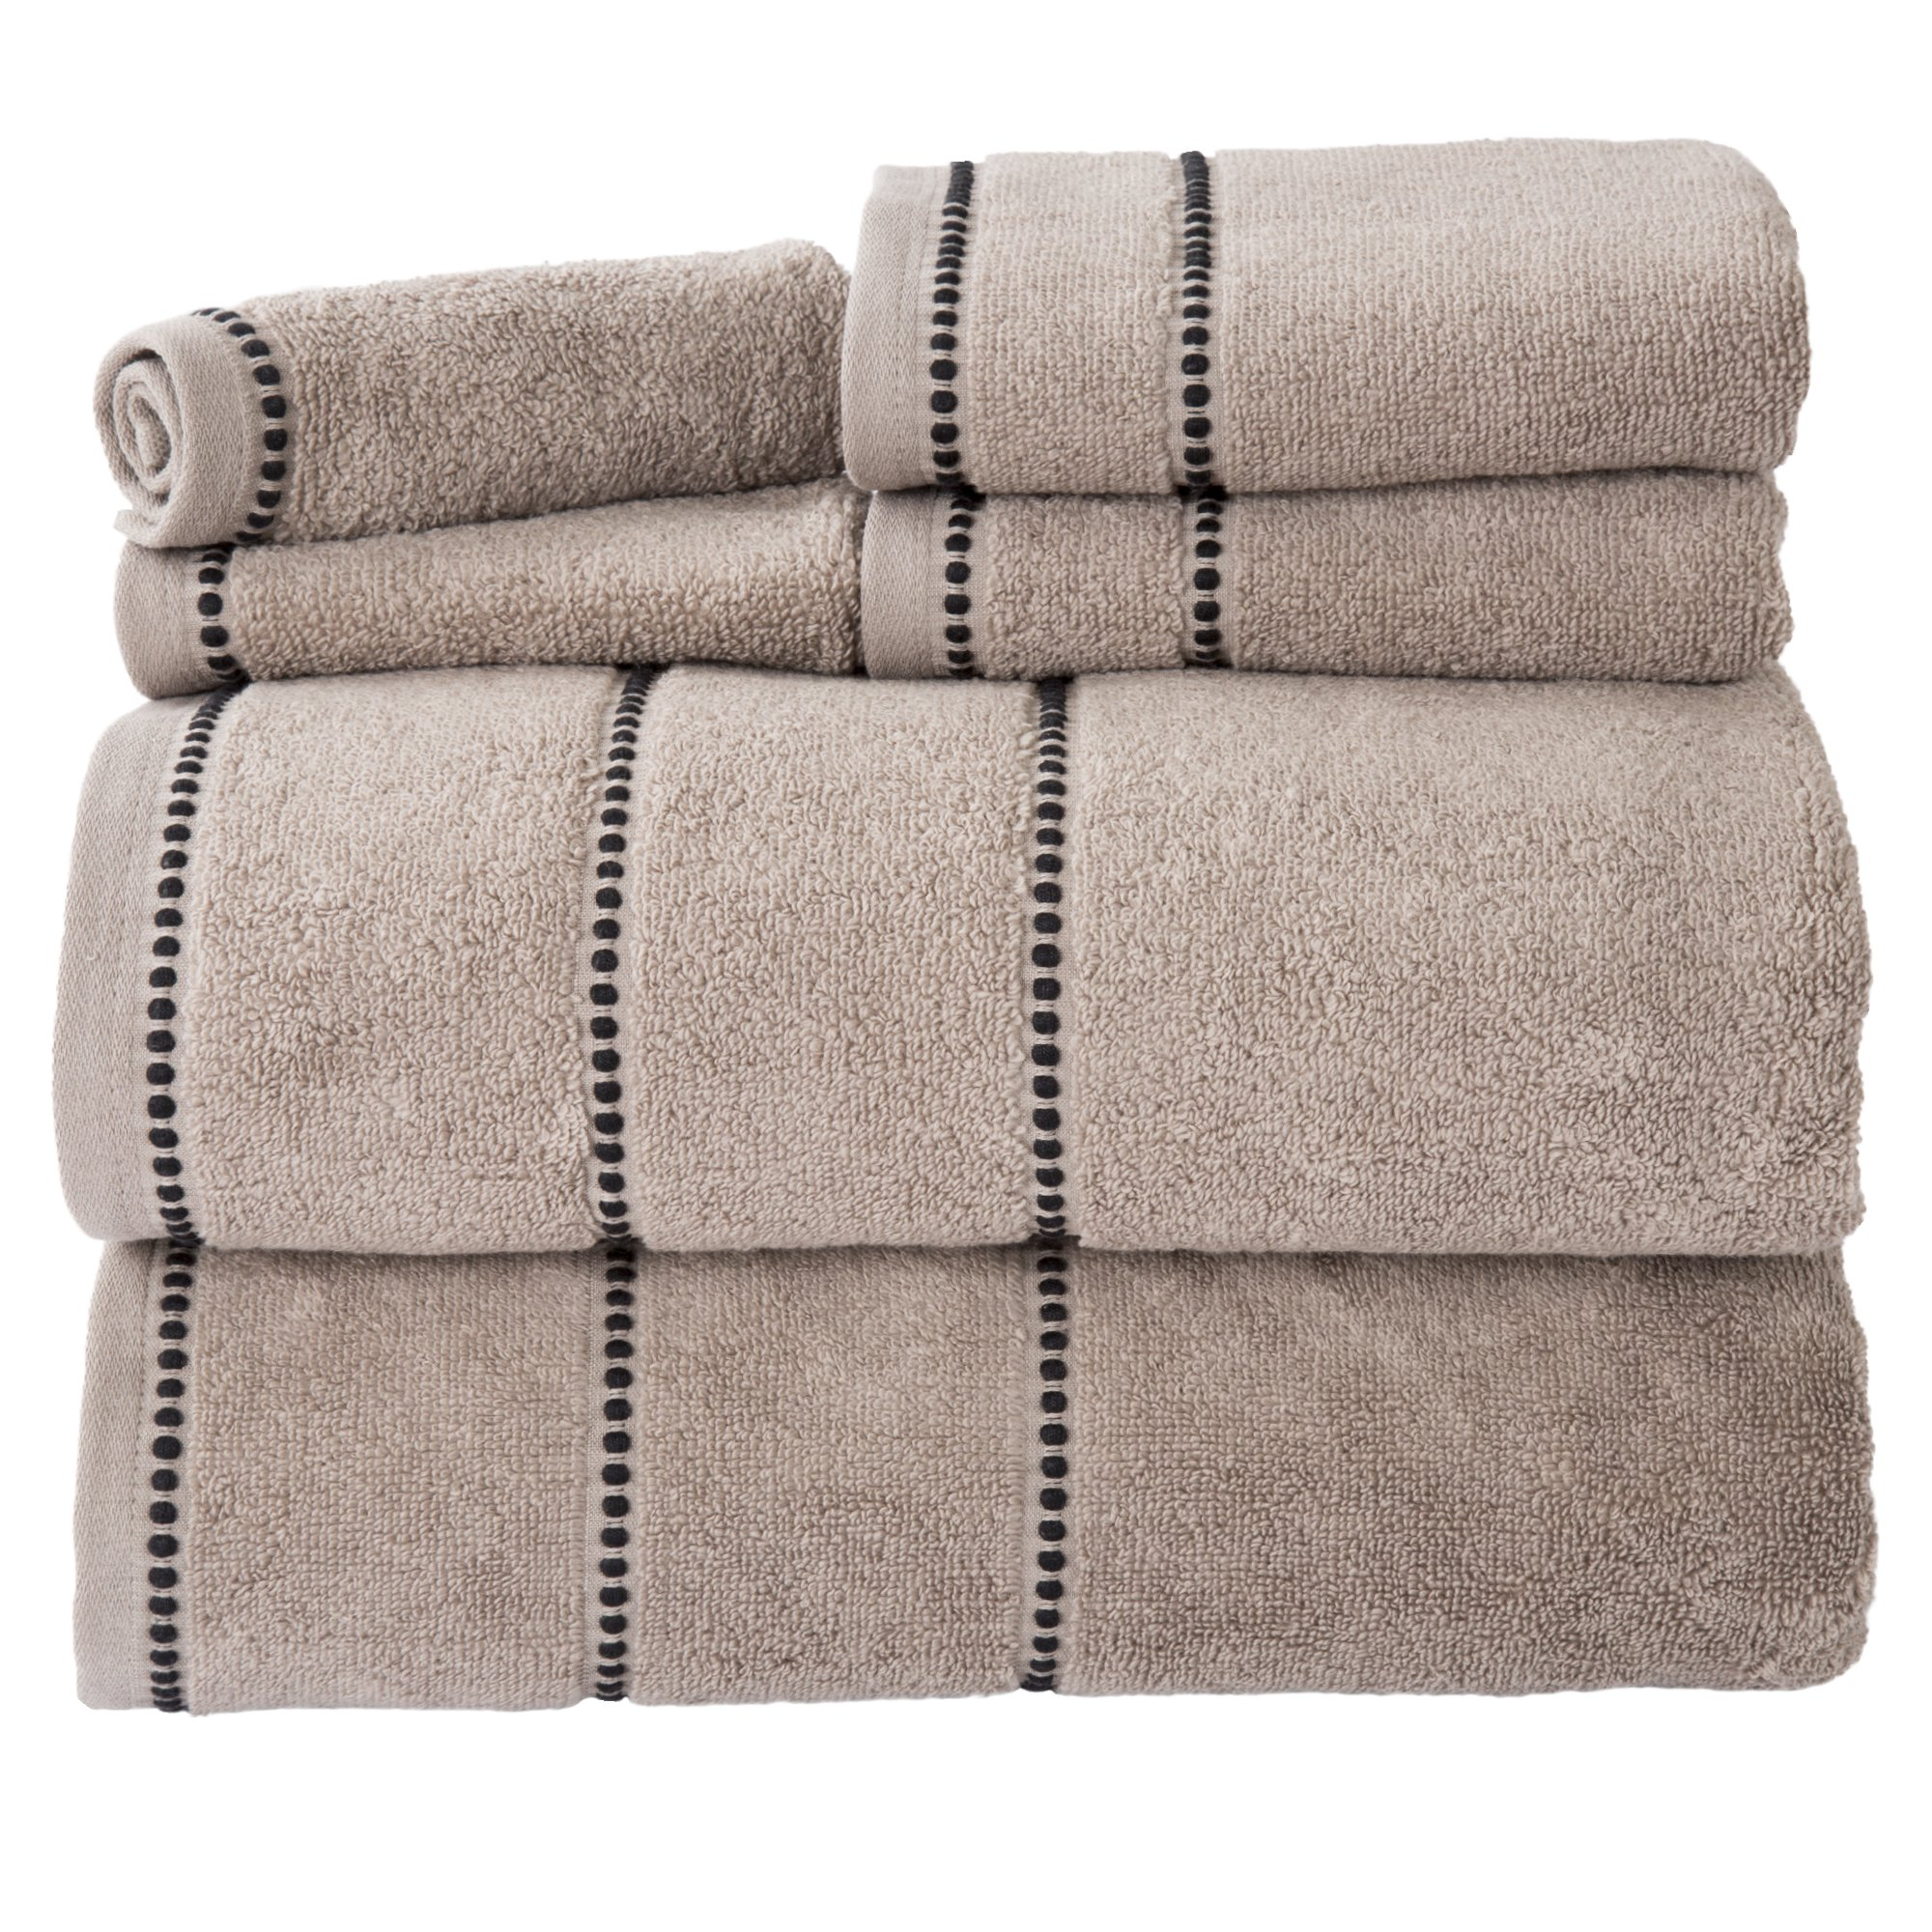 Bedford Home Quick Dry 100Percent Cotton Zero Twist 6Piece Towel Set -Taupe